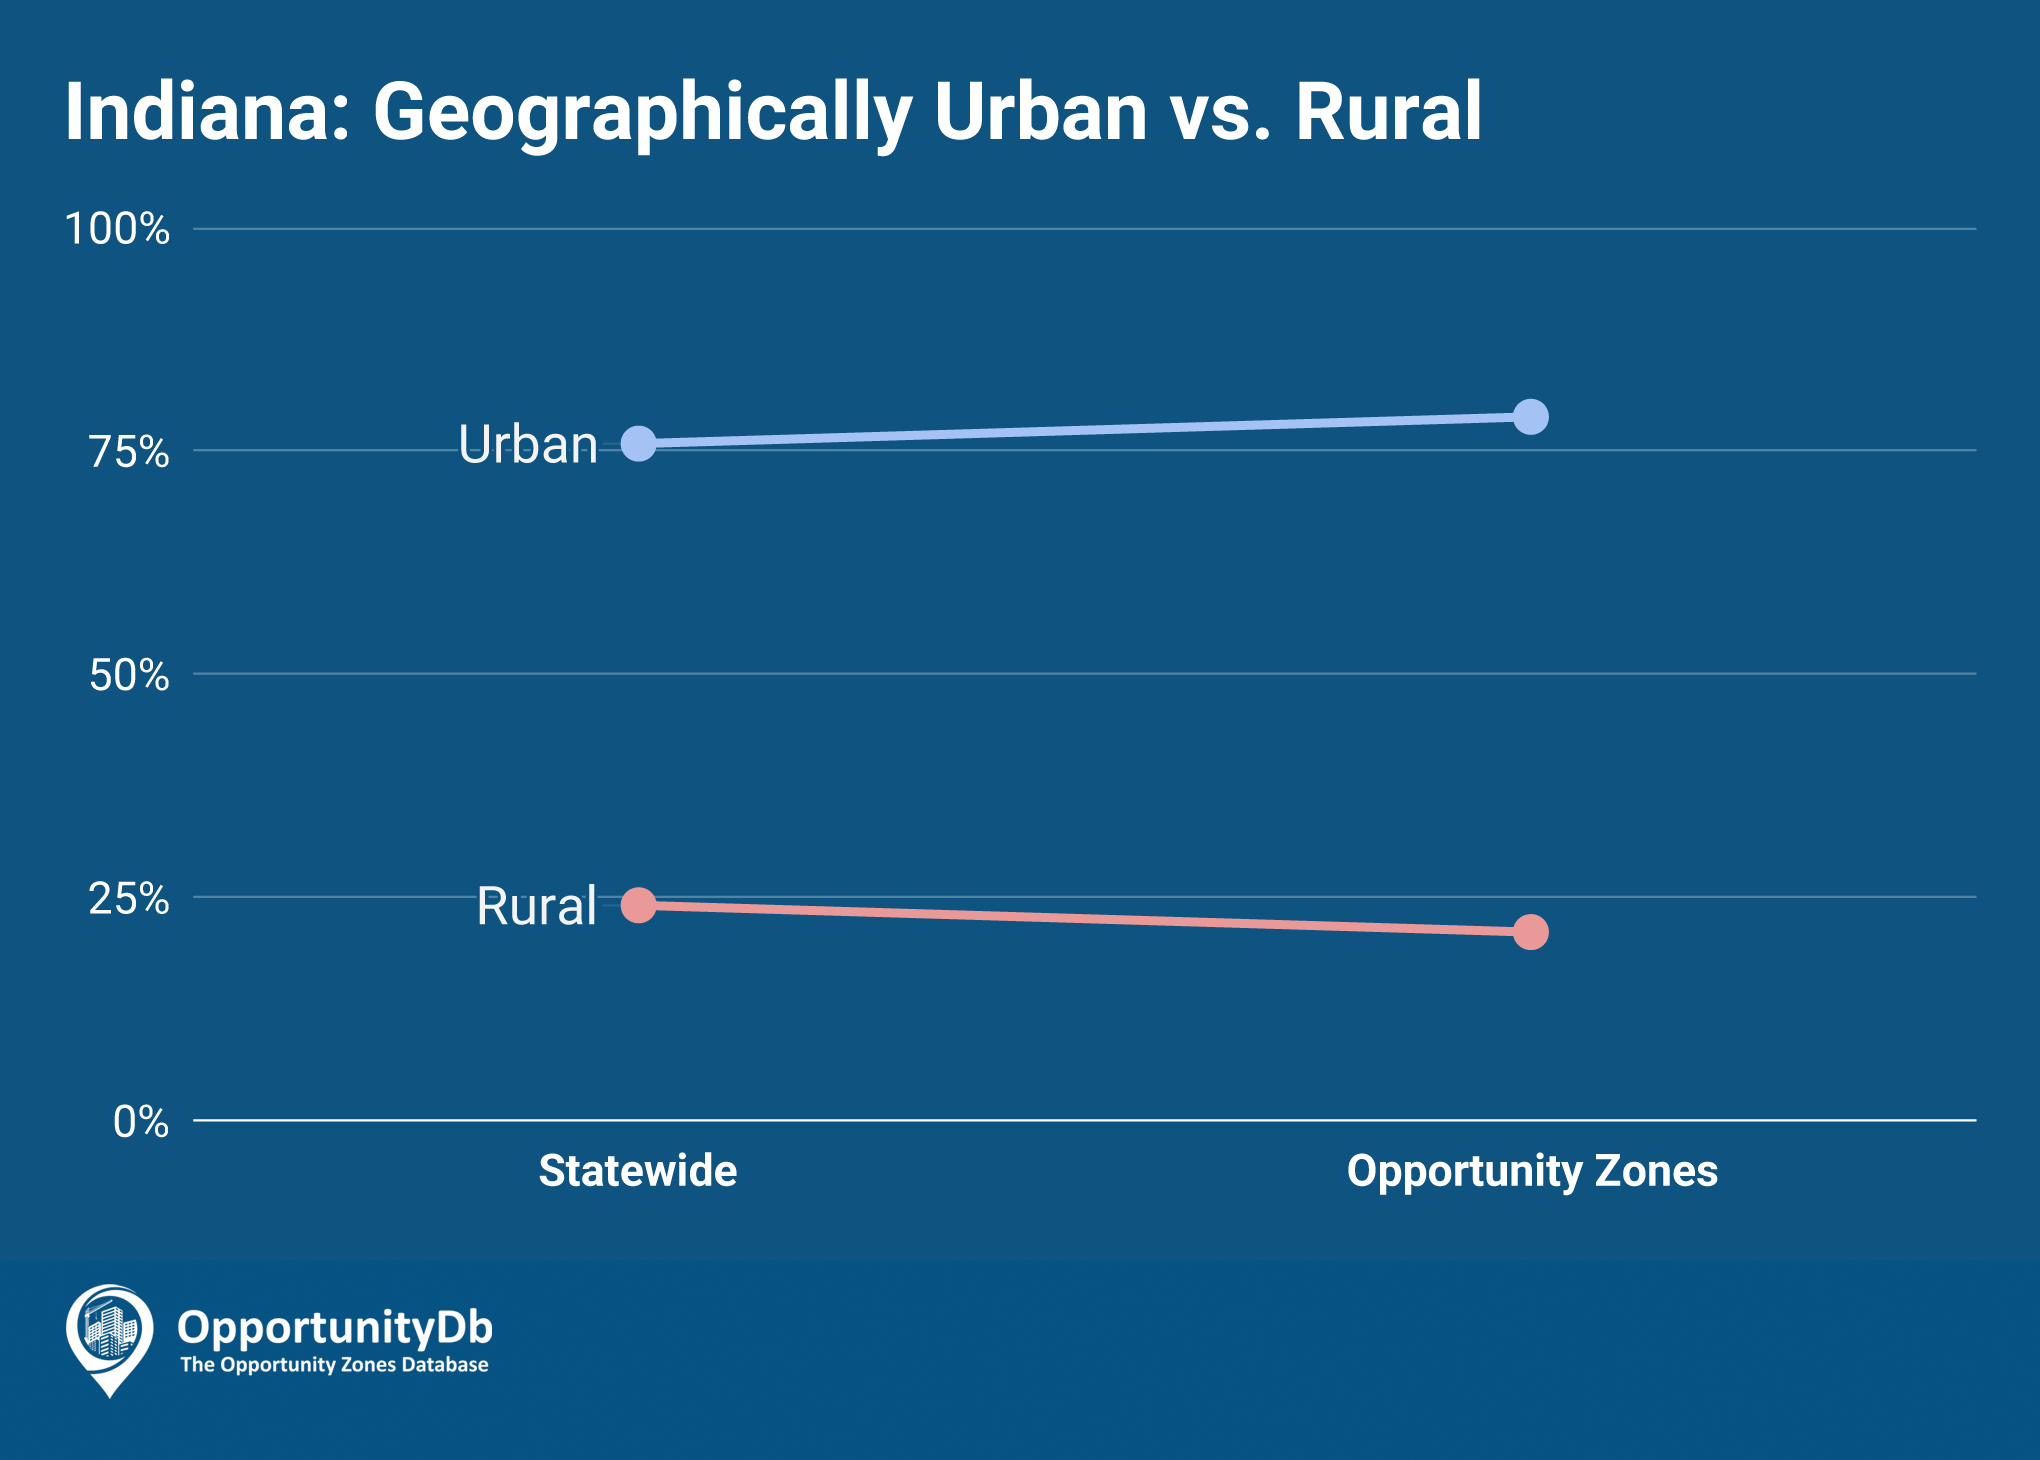 Urban vs. Rural in Indiana Opportunity Zones